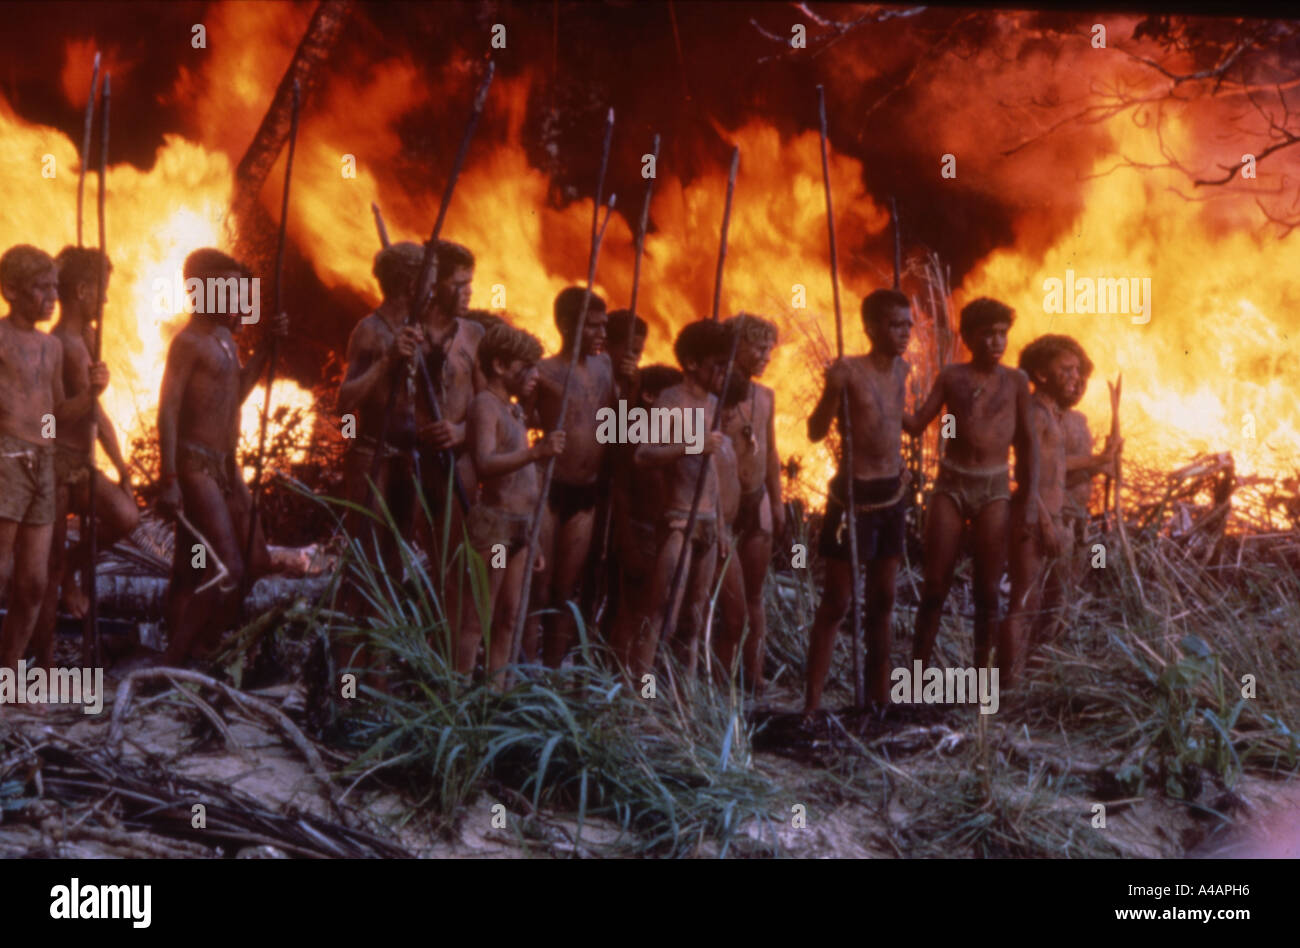 the lord of the flies the Lord of the flies is a 1990 american drama film adapted from the classic novel lord of the flies by william goldingit is the second film adaptation of the book, the first being the 1963 film lord of the flies.